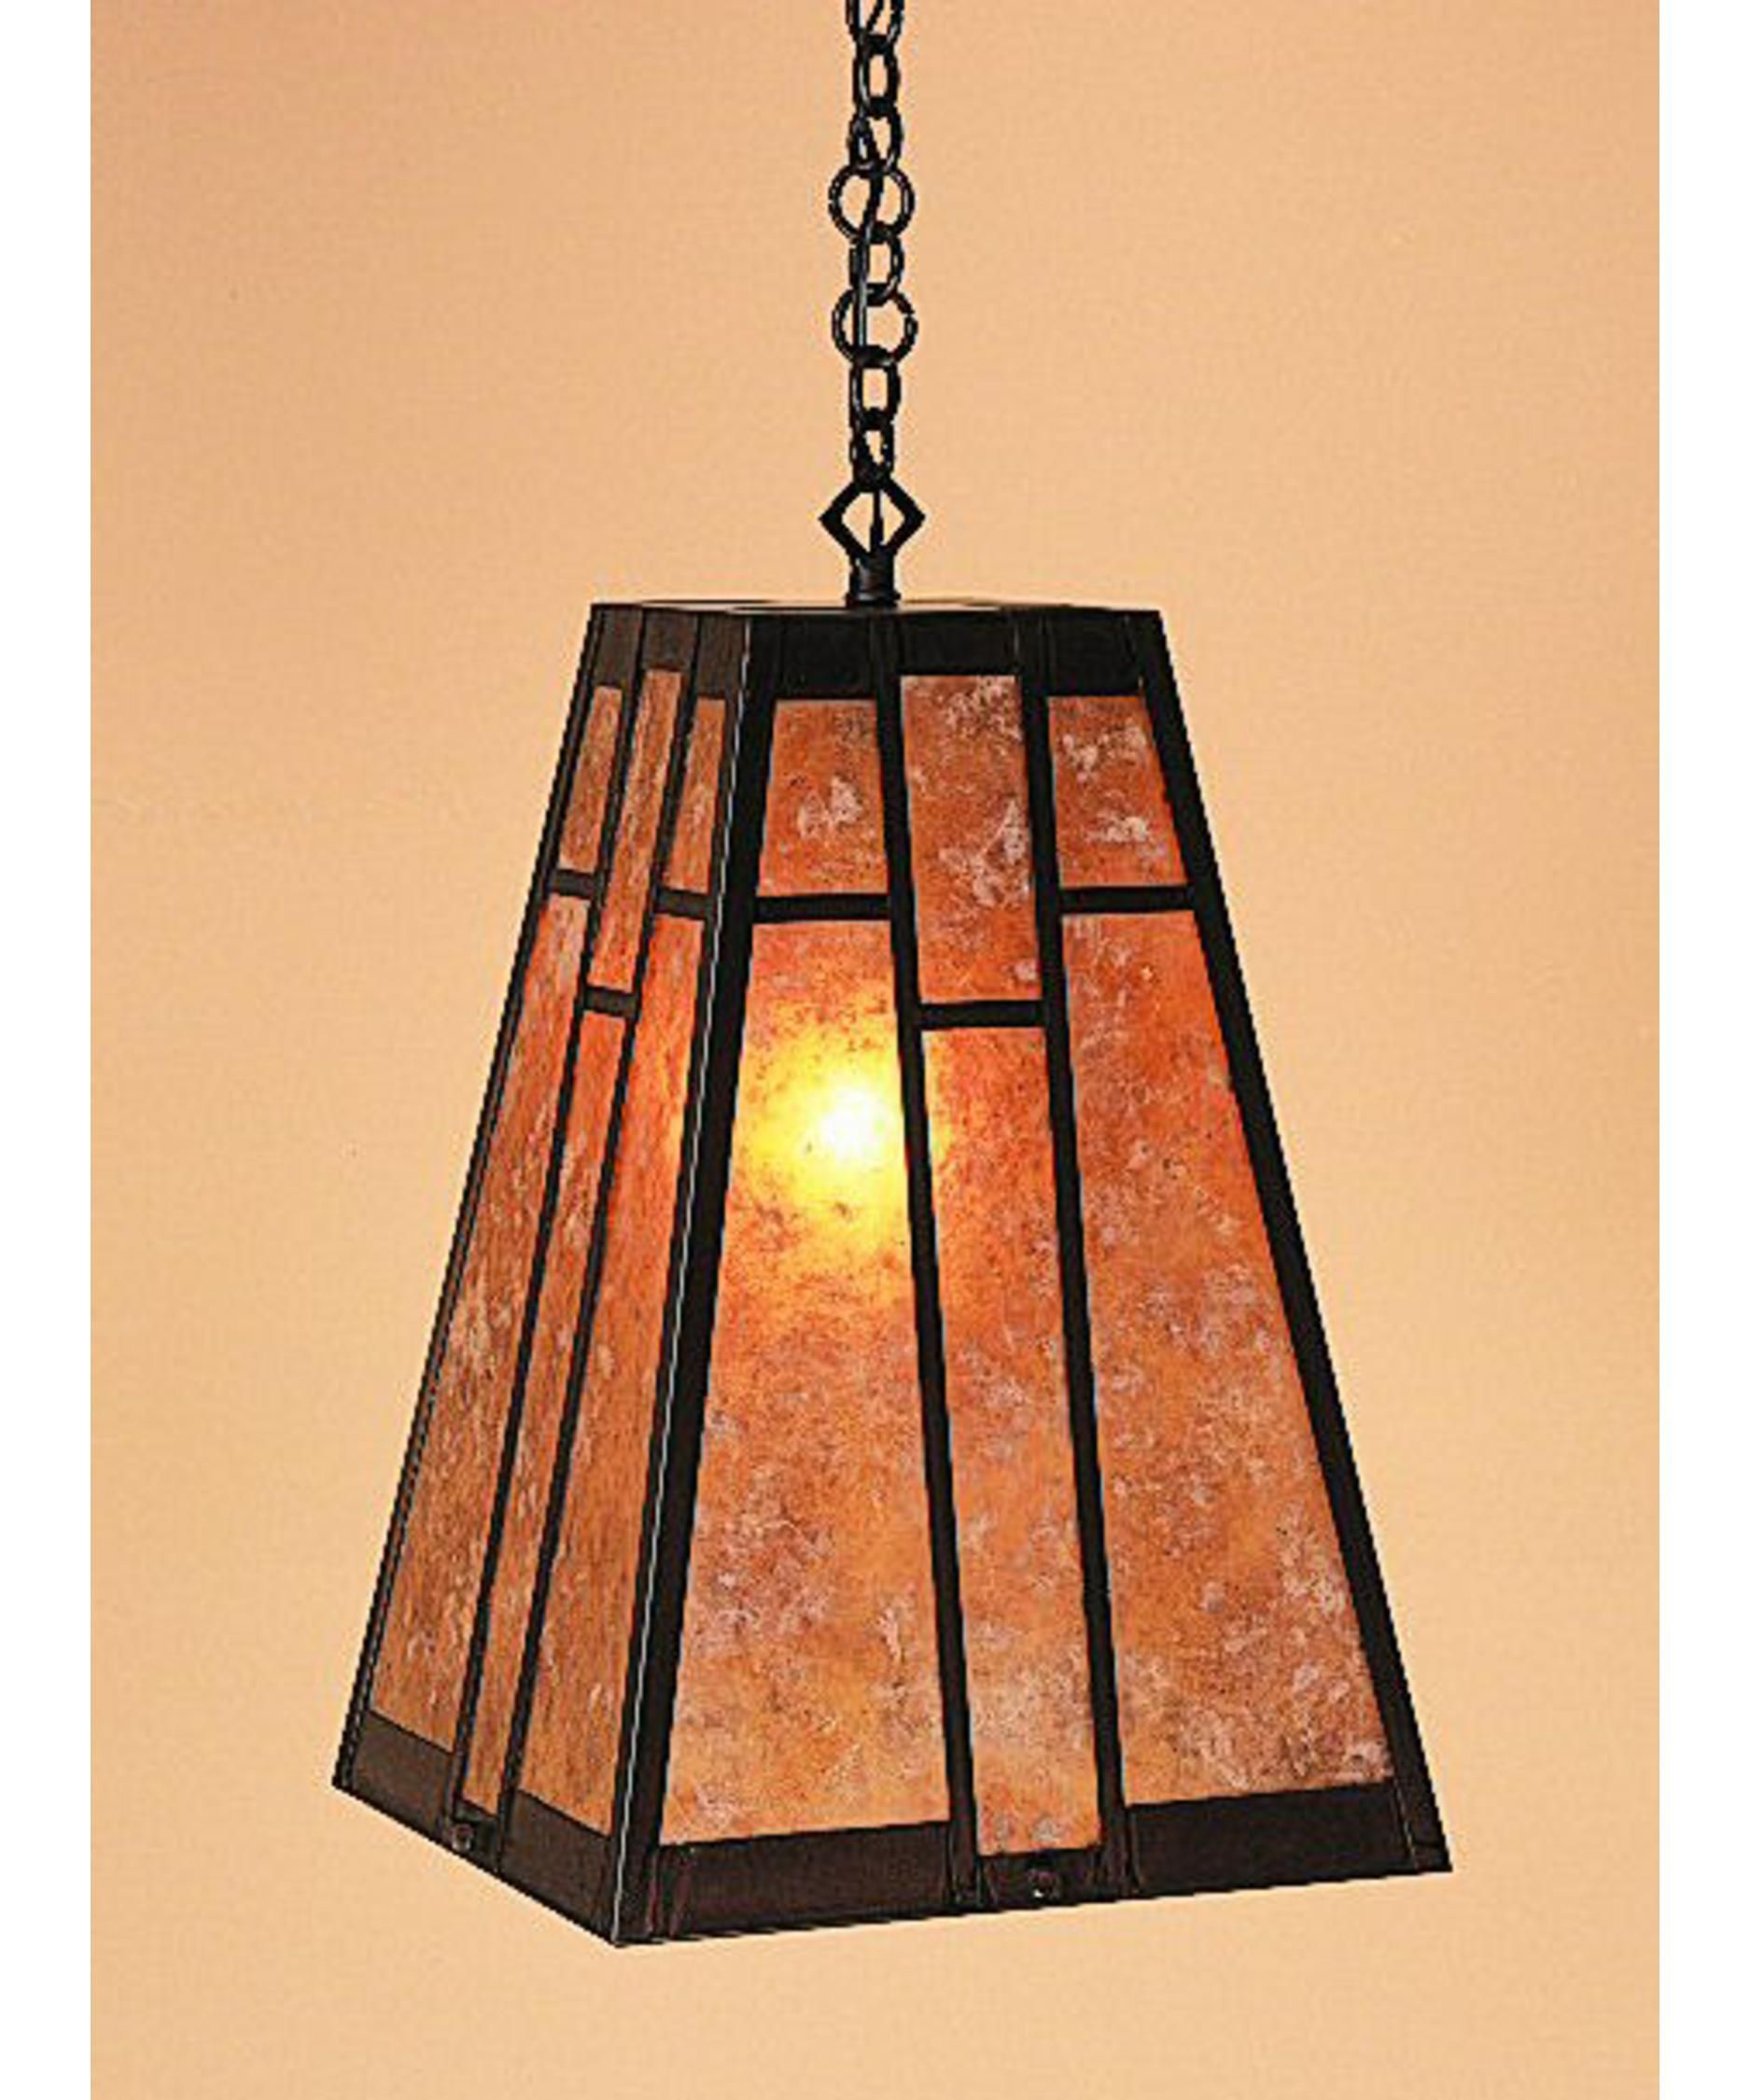 Accessories & Furniture Affordable Mission Style Pendant Lighting